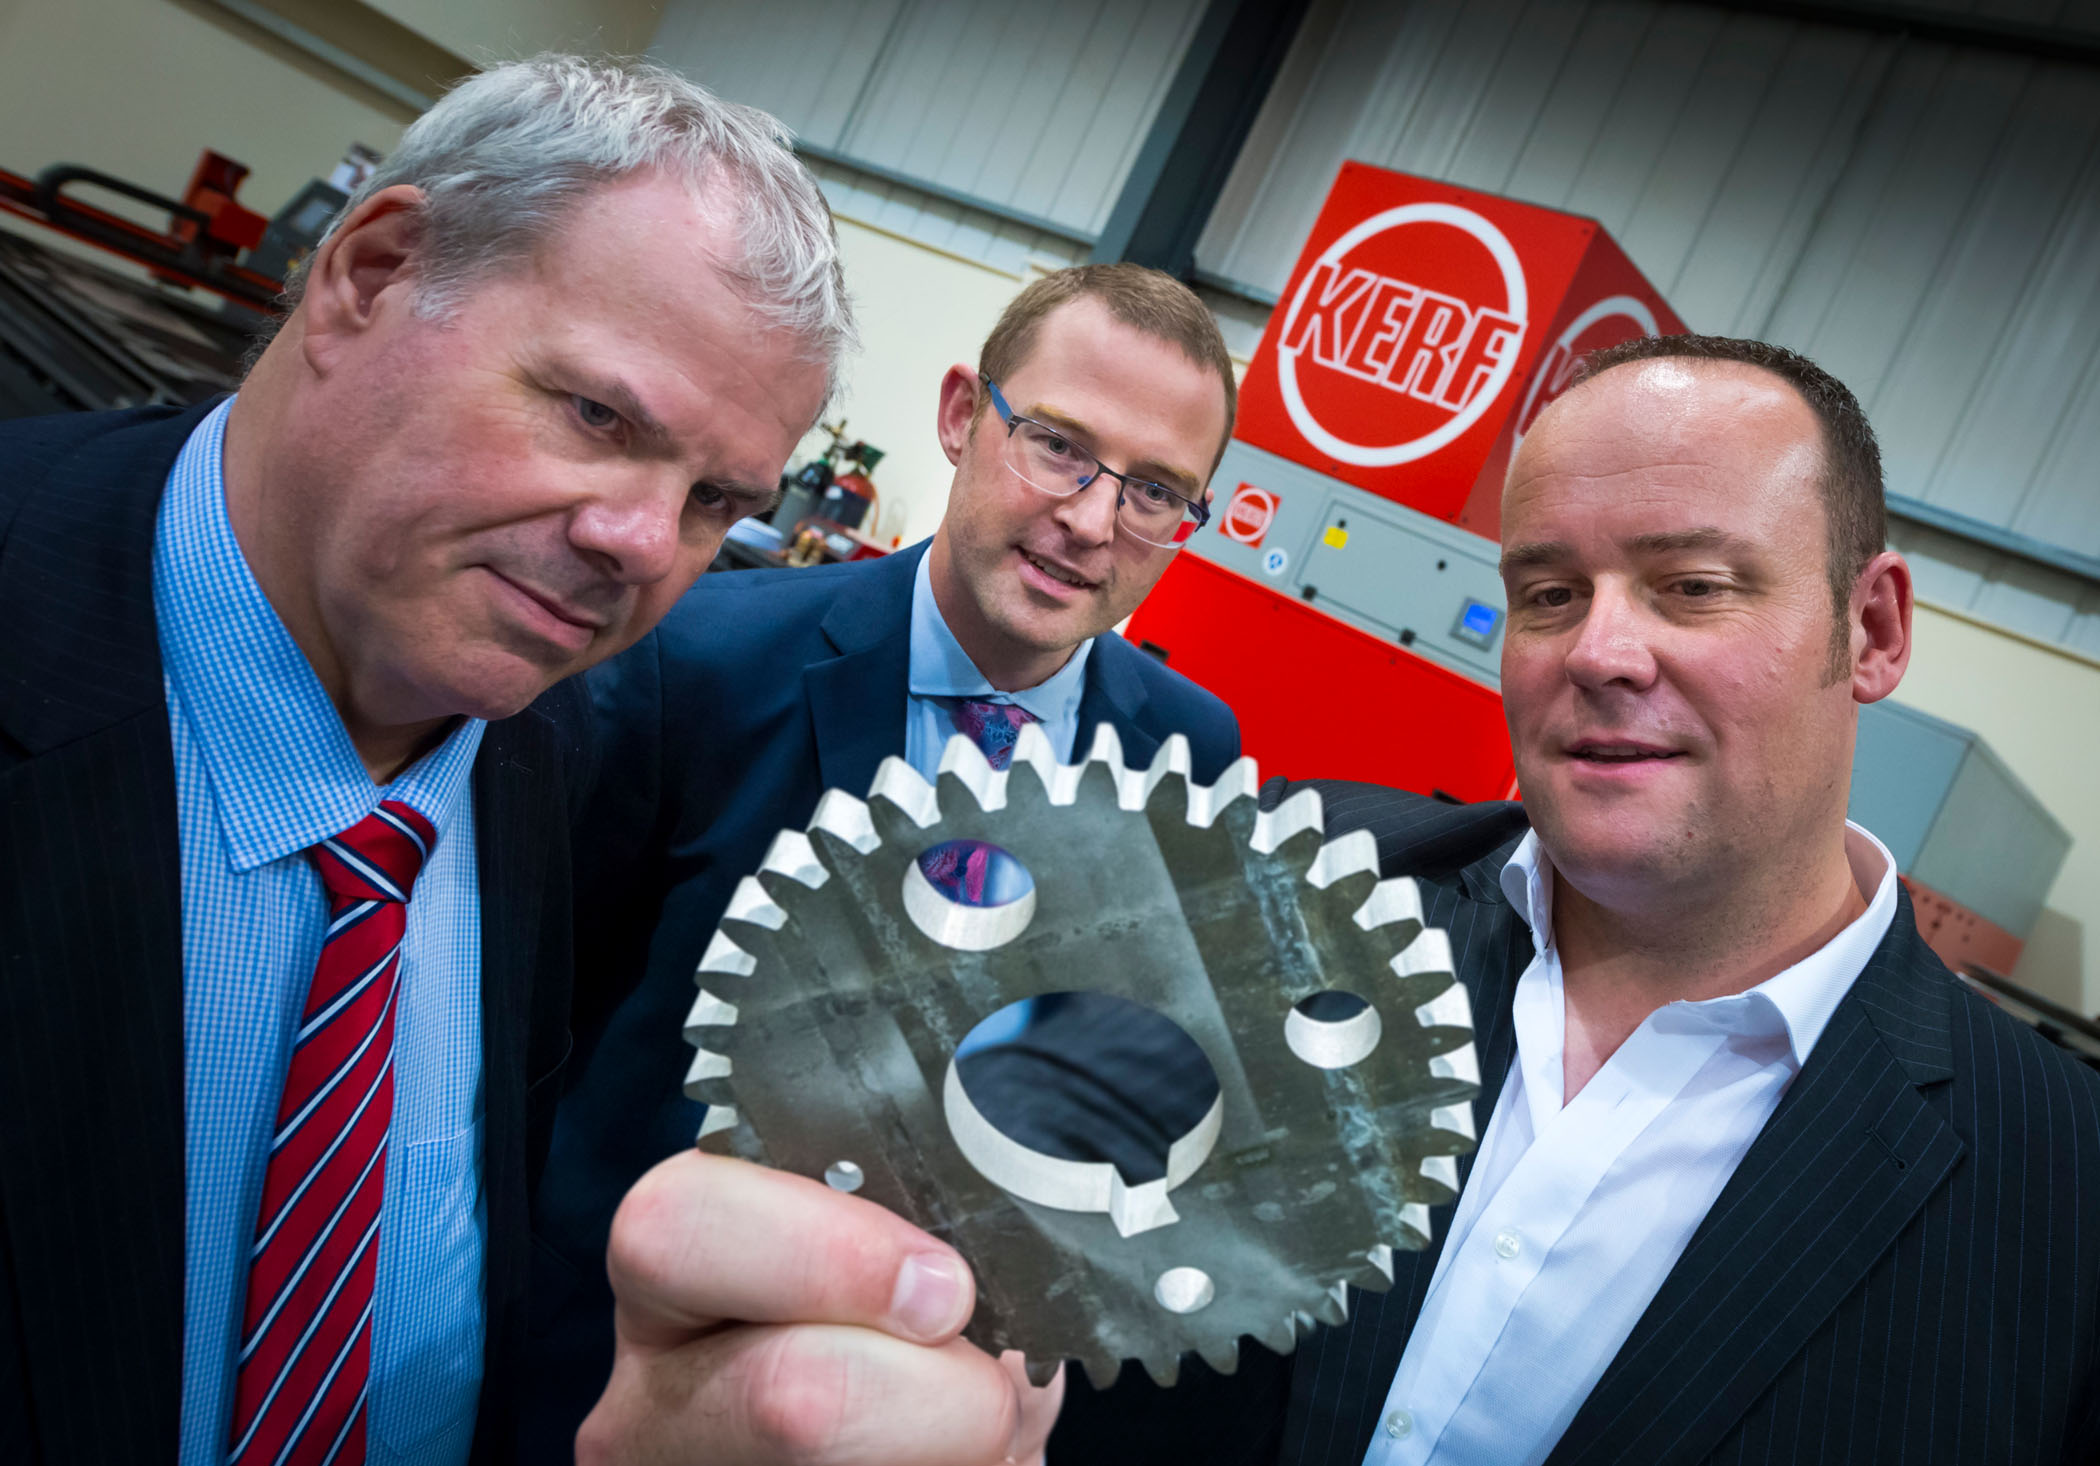 Image: Steely determination: local metal cutting company booming following council grant